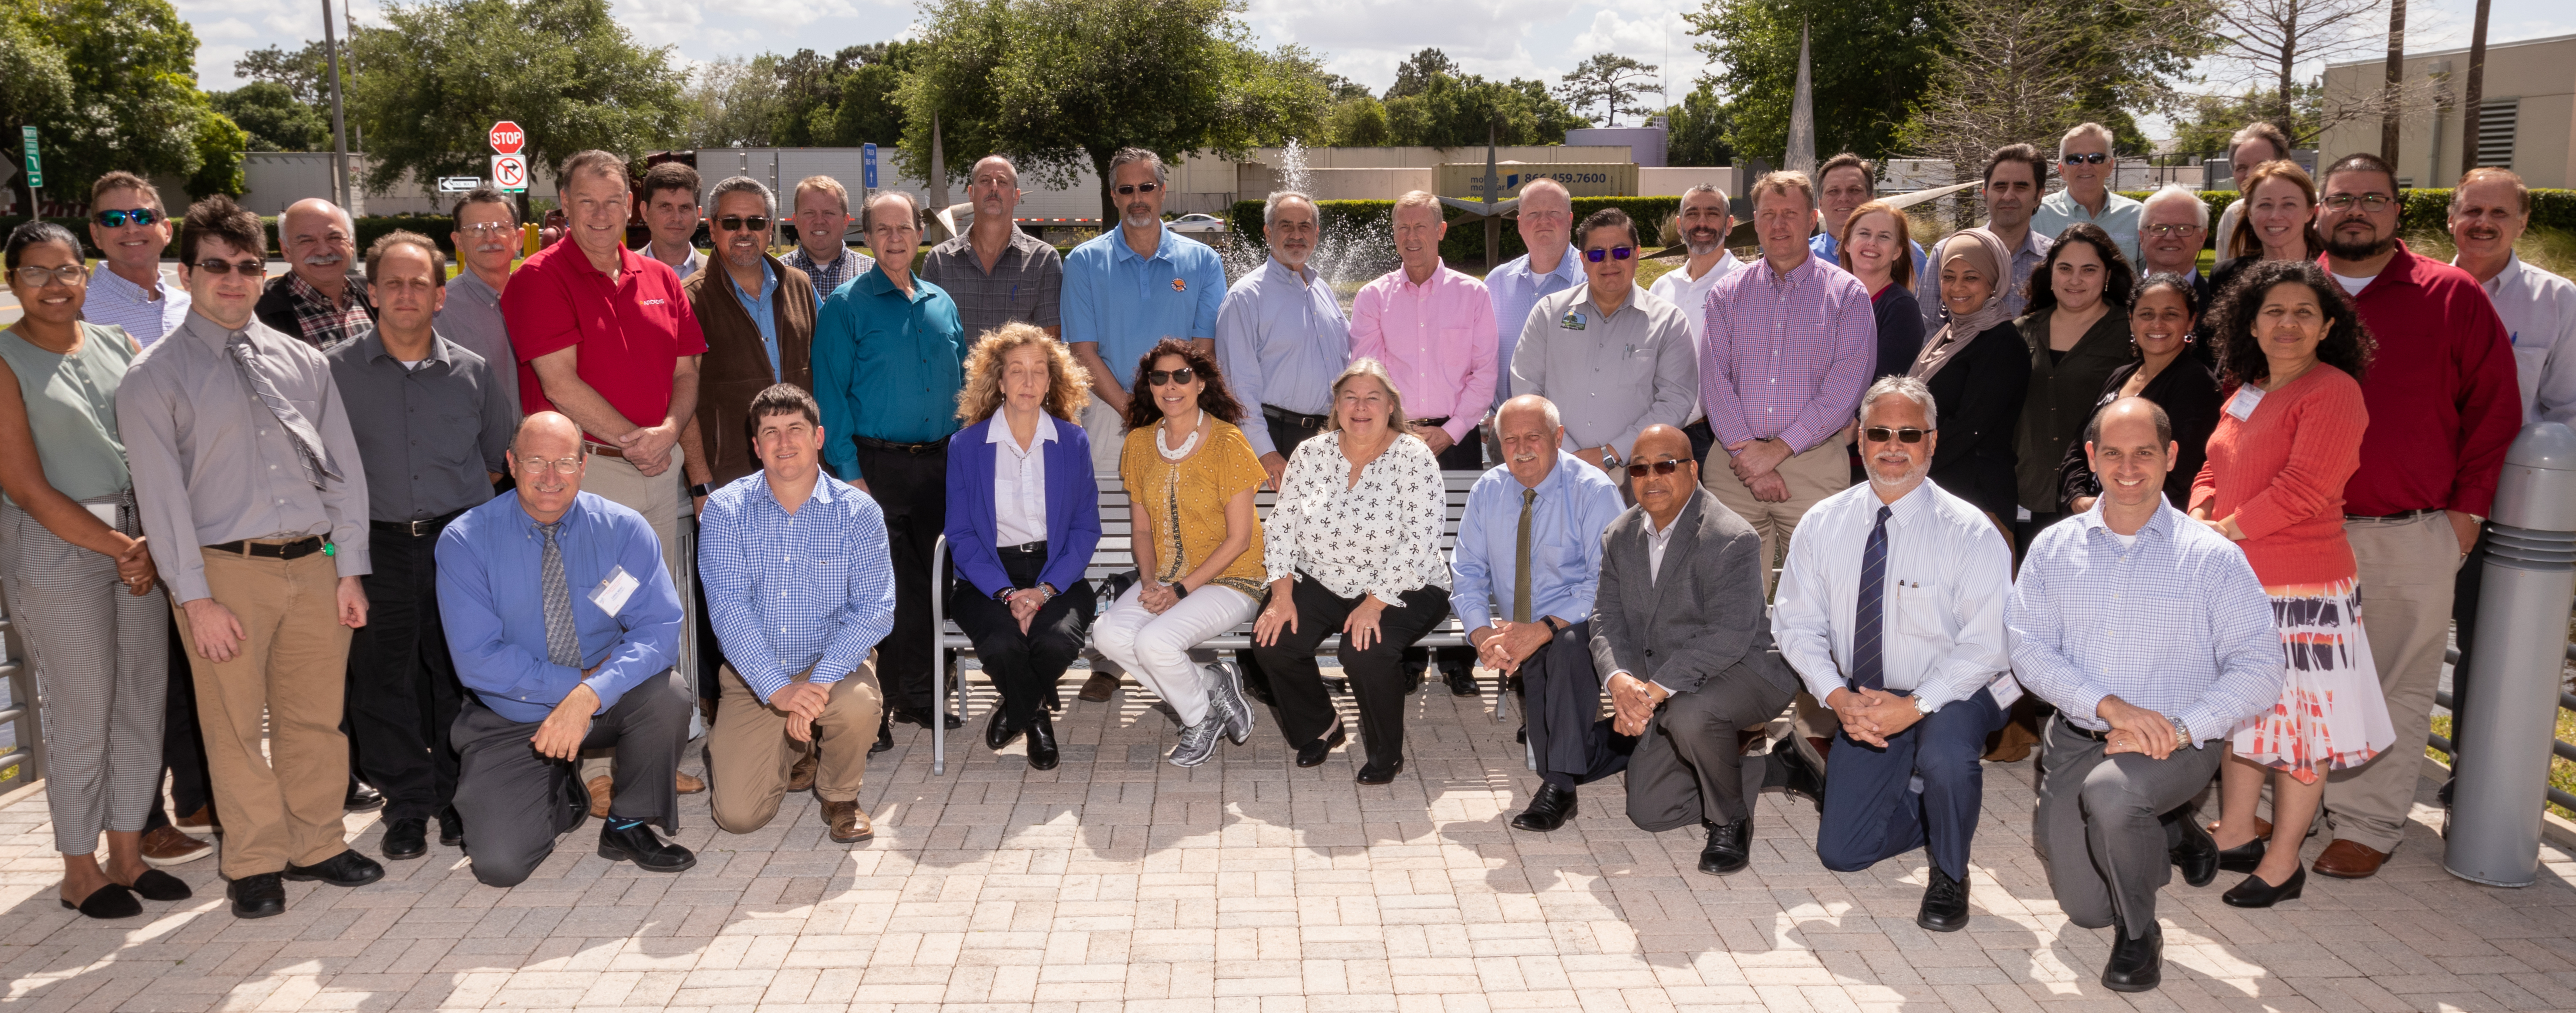 Picture of Florida Greenbook Committee